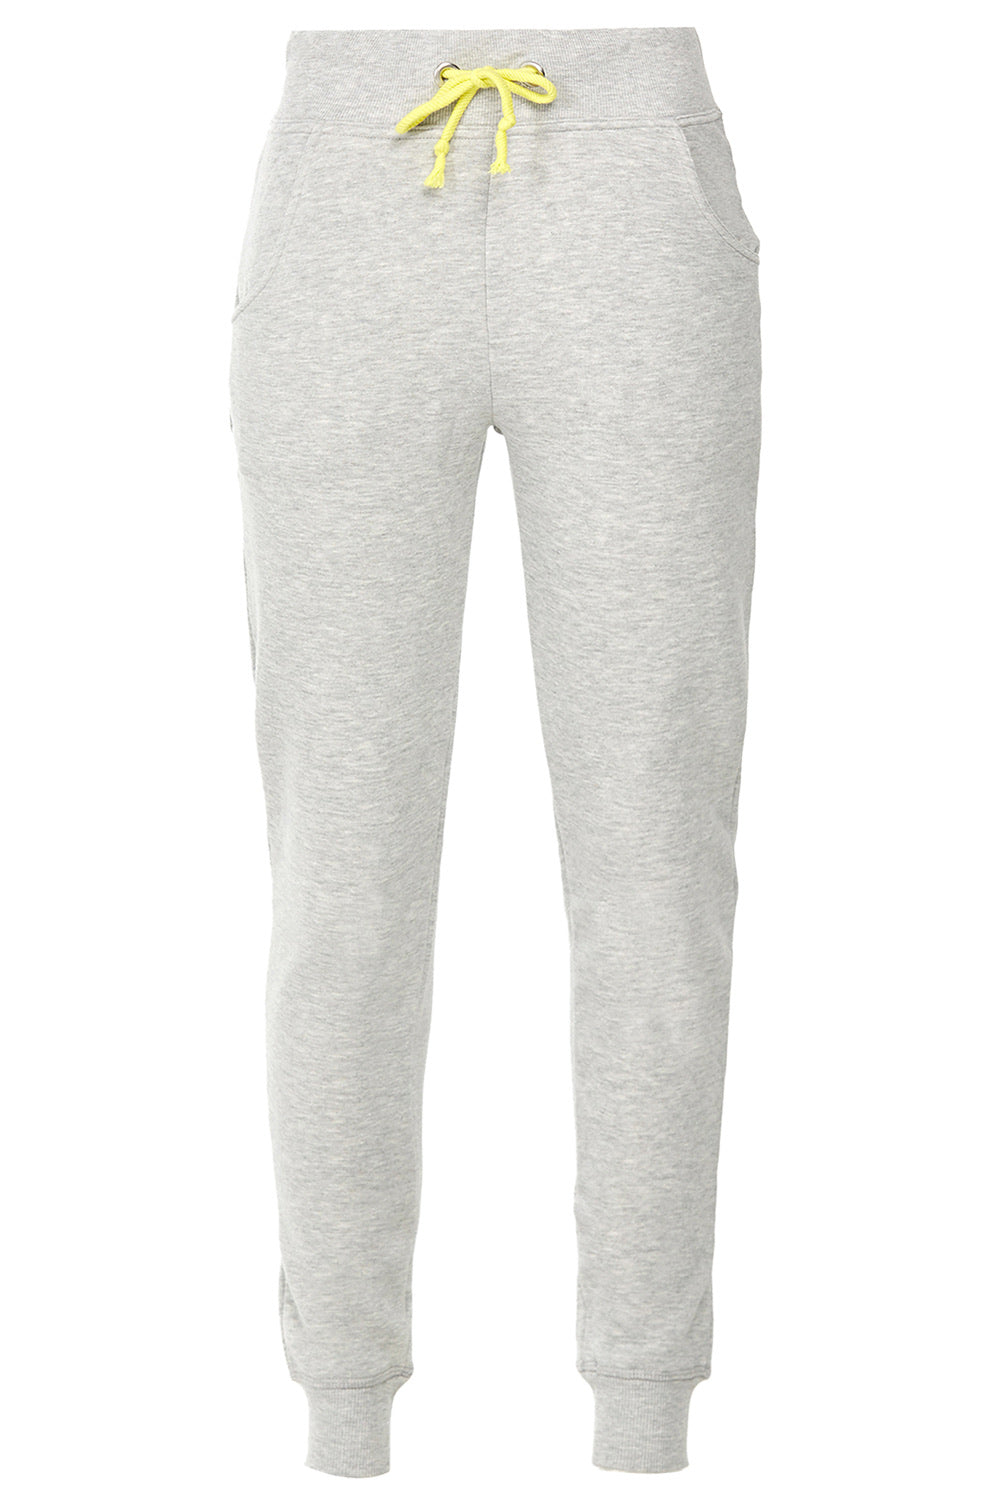 Biondina Grey Sweatpants